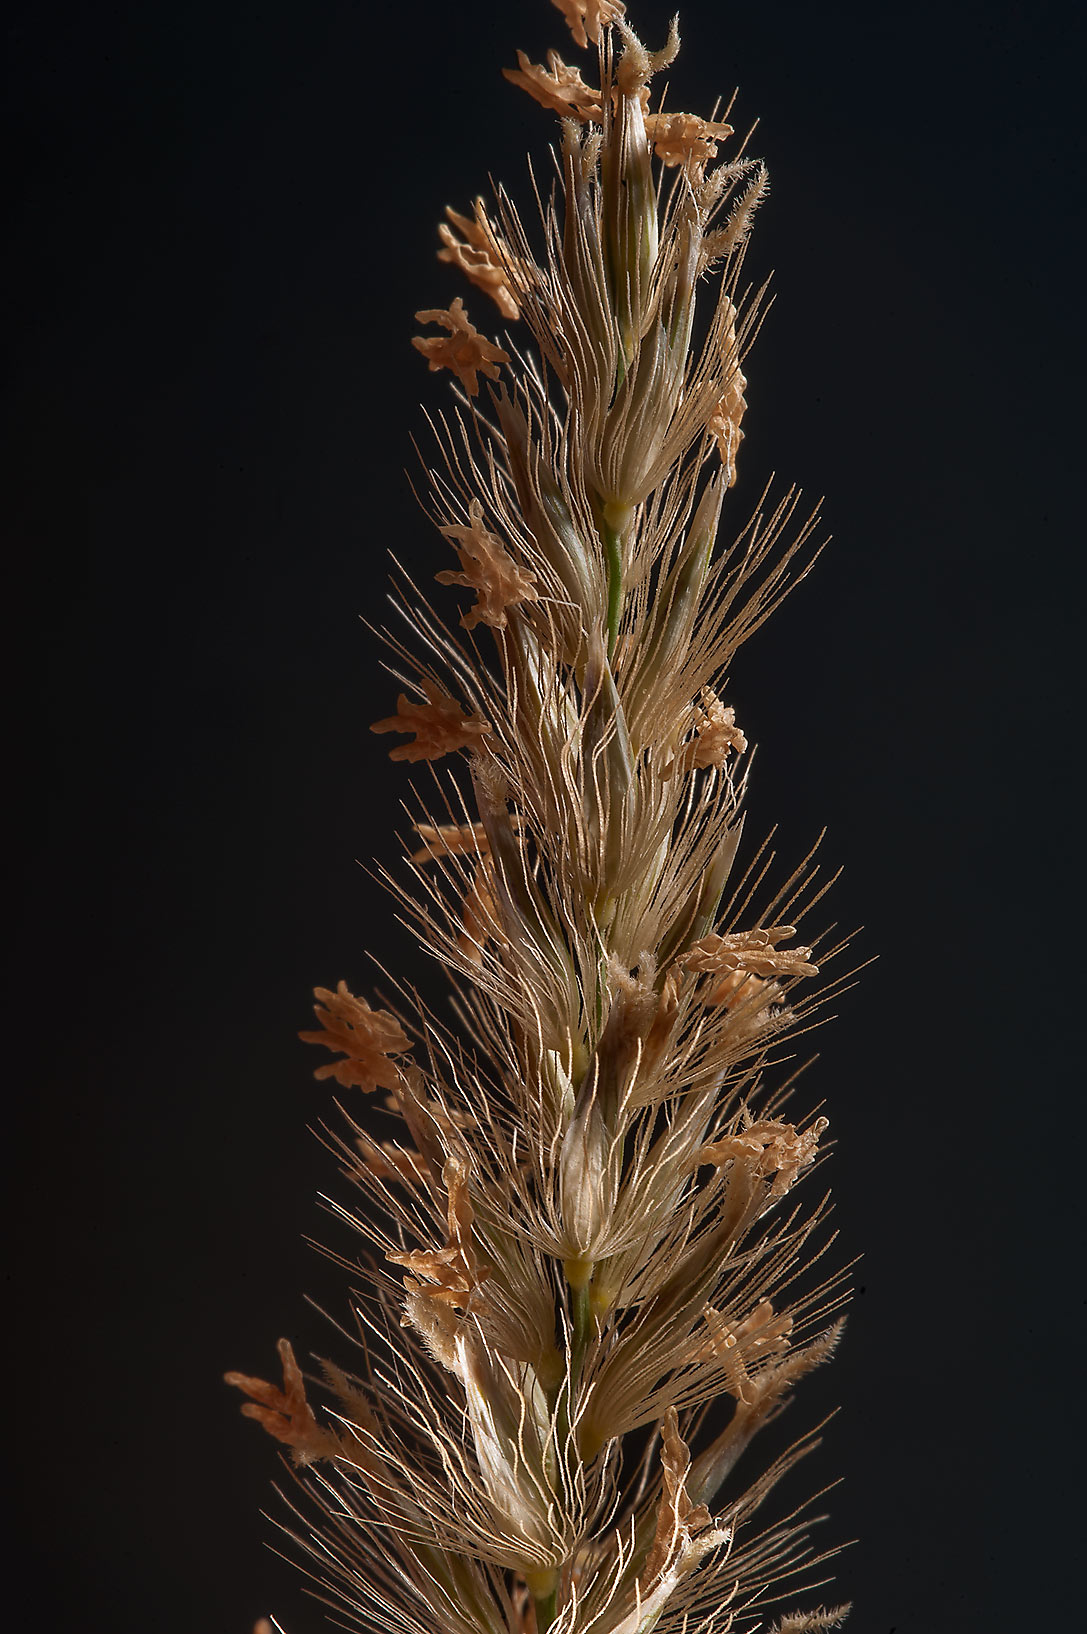 Grass Pennisetum divisum in area between Al Khor and Ras Laffan. Qatar